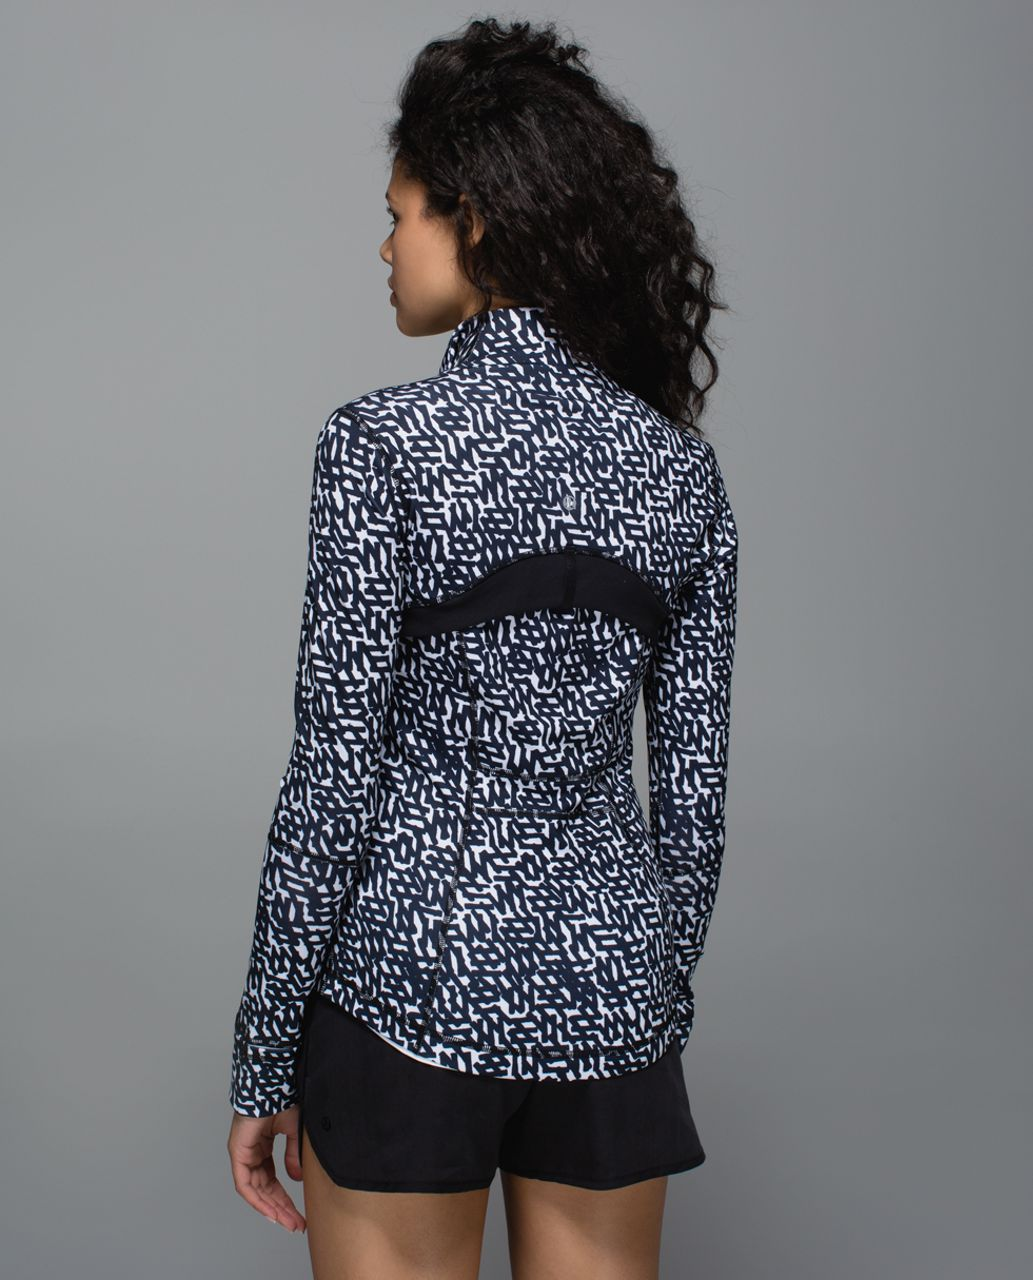 Lululemon Define Jacket - Net Pop White Black / Black